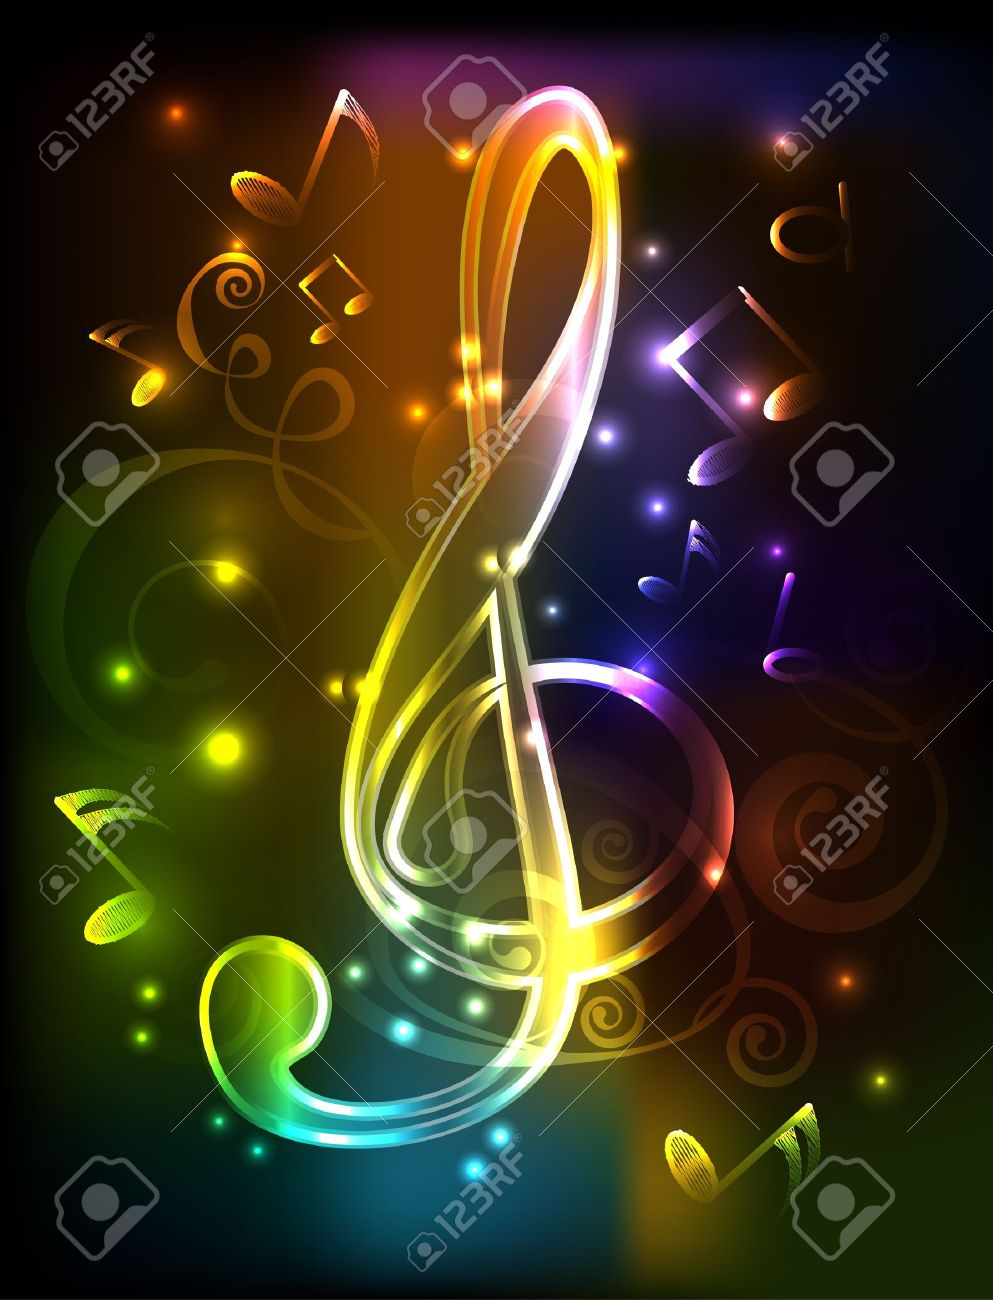 neon treble clef illustration whith note - 13338236